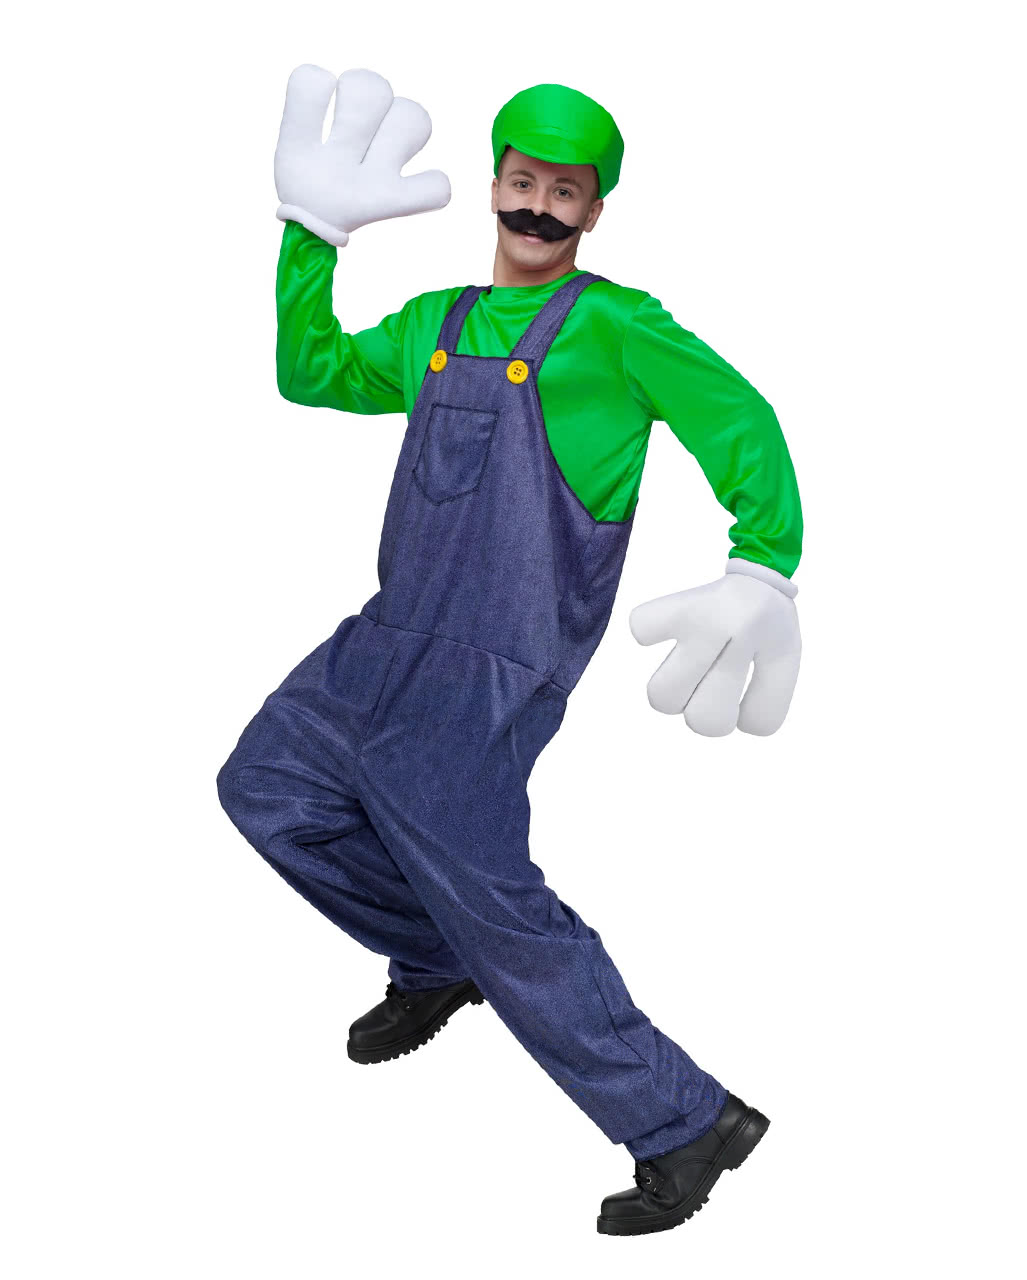 video game plumber 2 costume